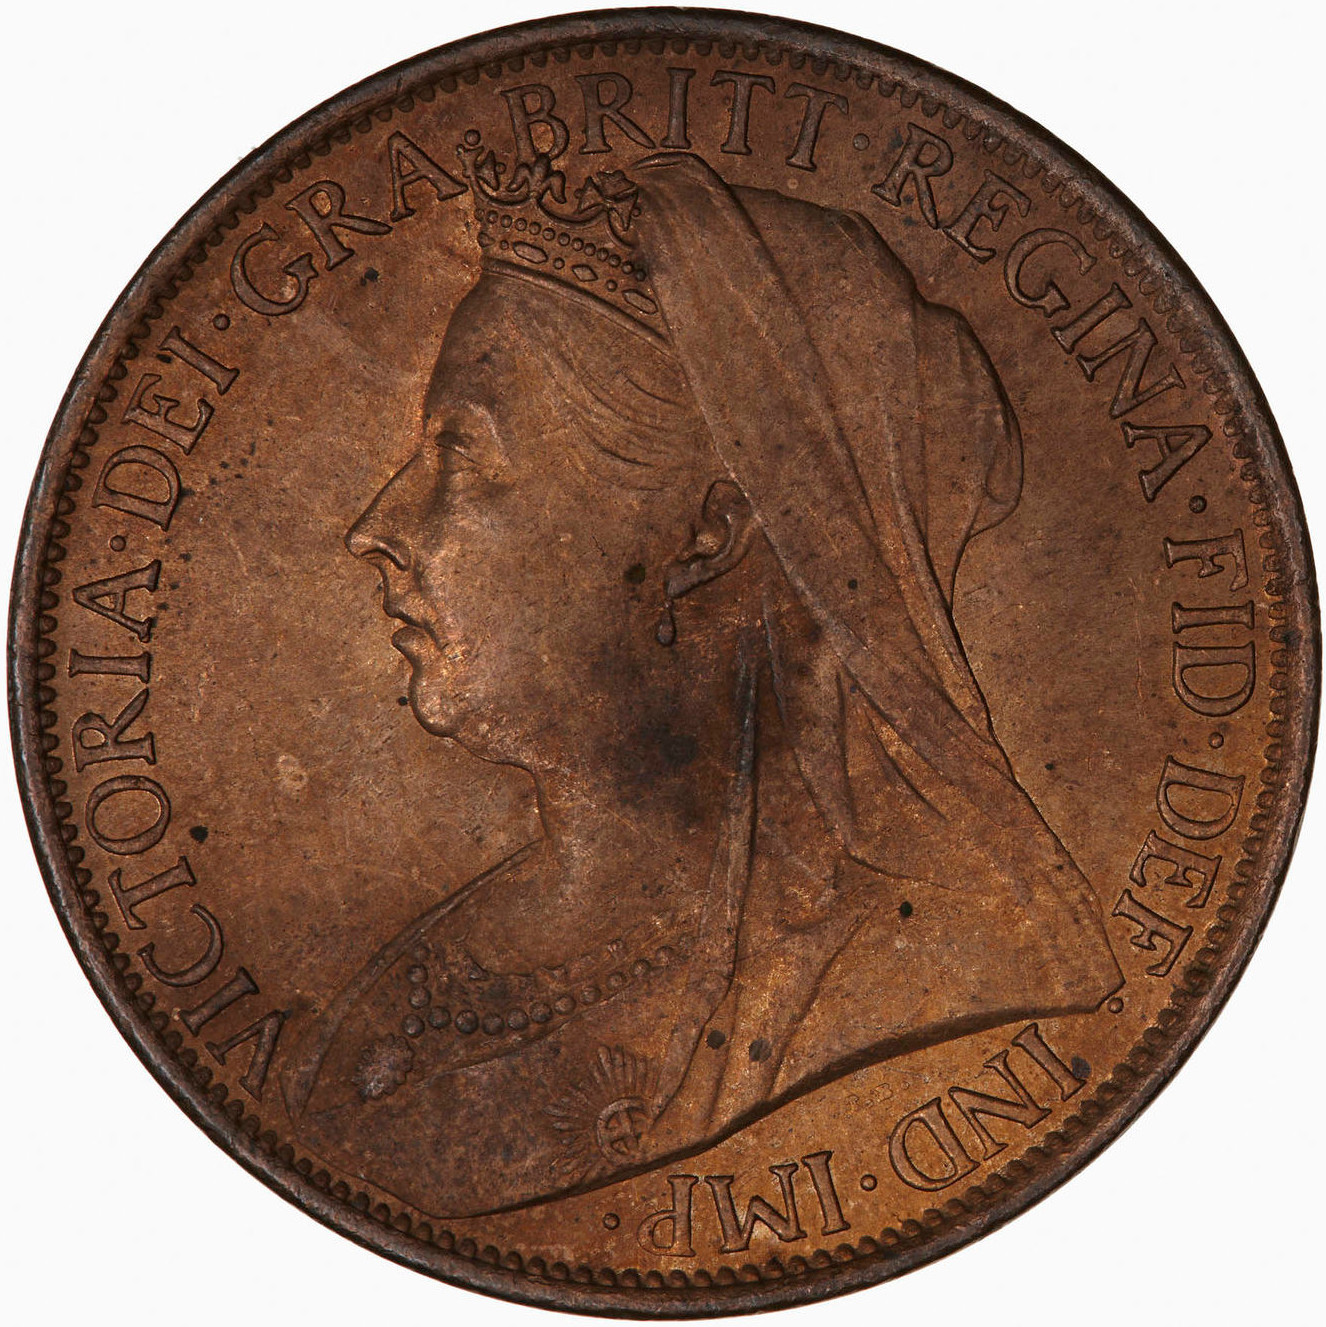 Penny 1901: Photo Coin - Penny, Queen Victoria, Great Britain, 1901